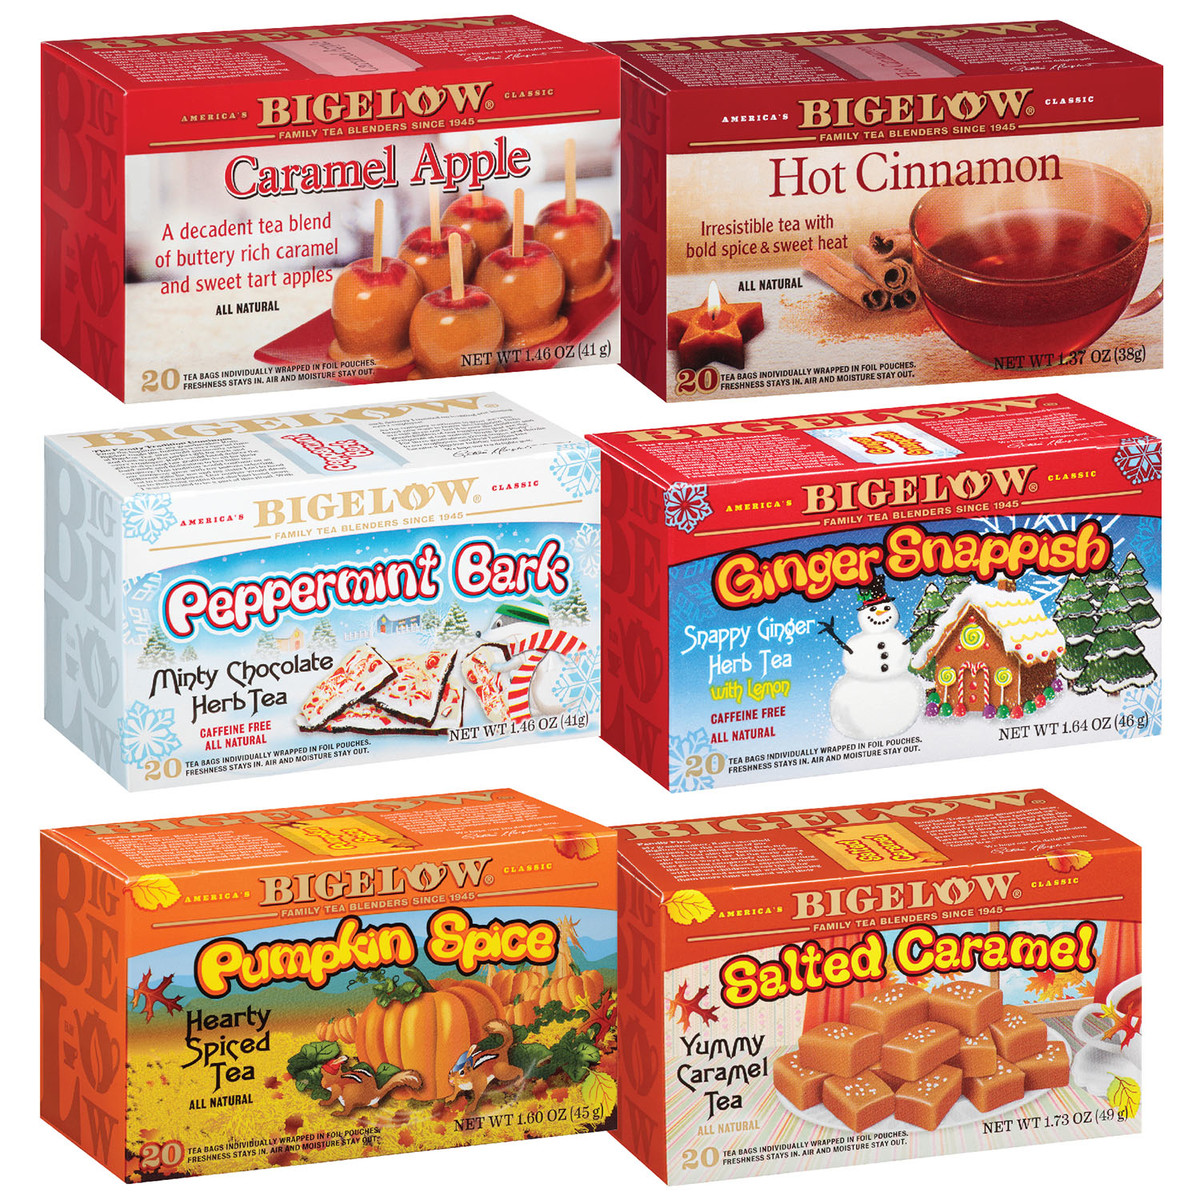 Mixed Case of 6 Bigelow Seasonal Teas - Case of 6 boxes - total of 120 teabags